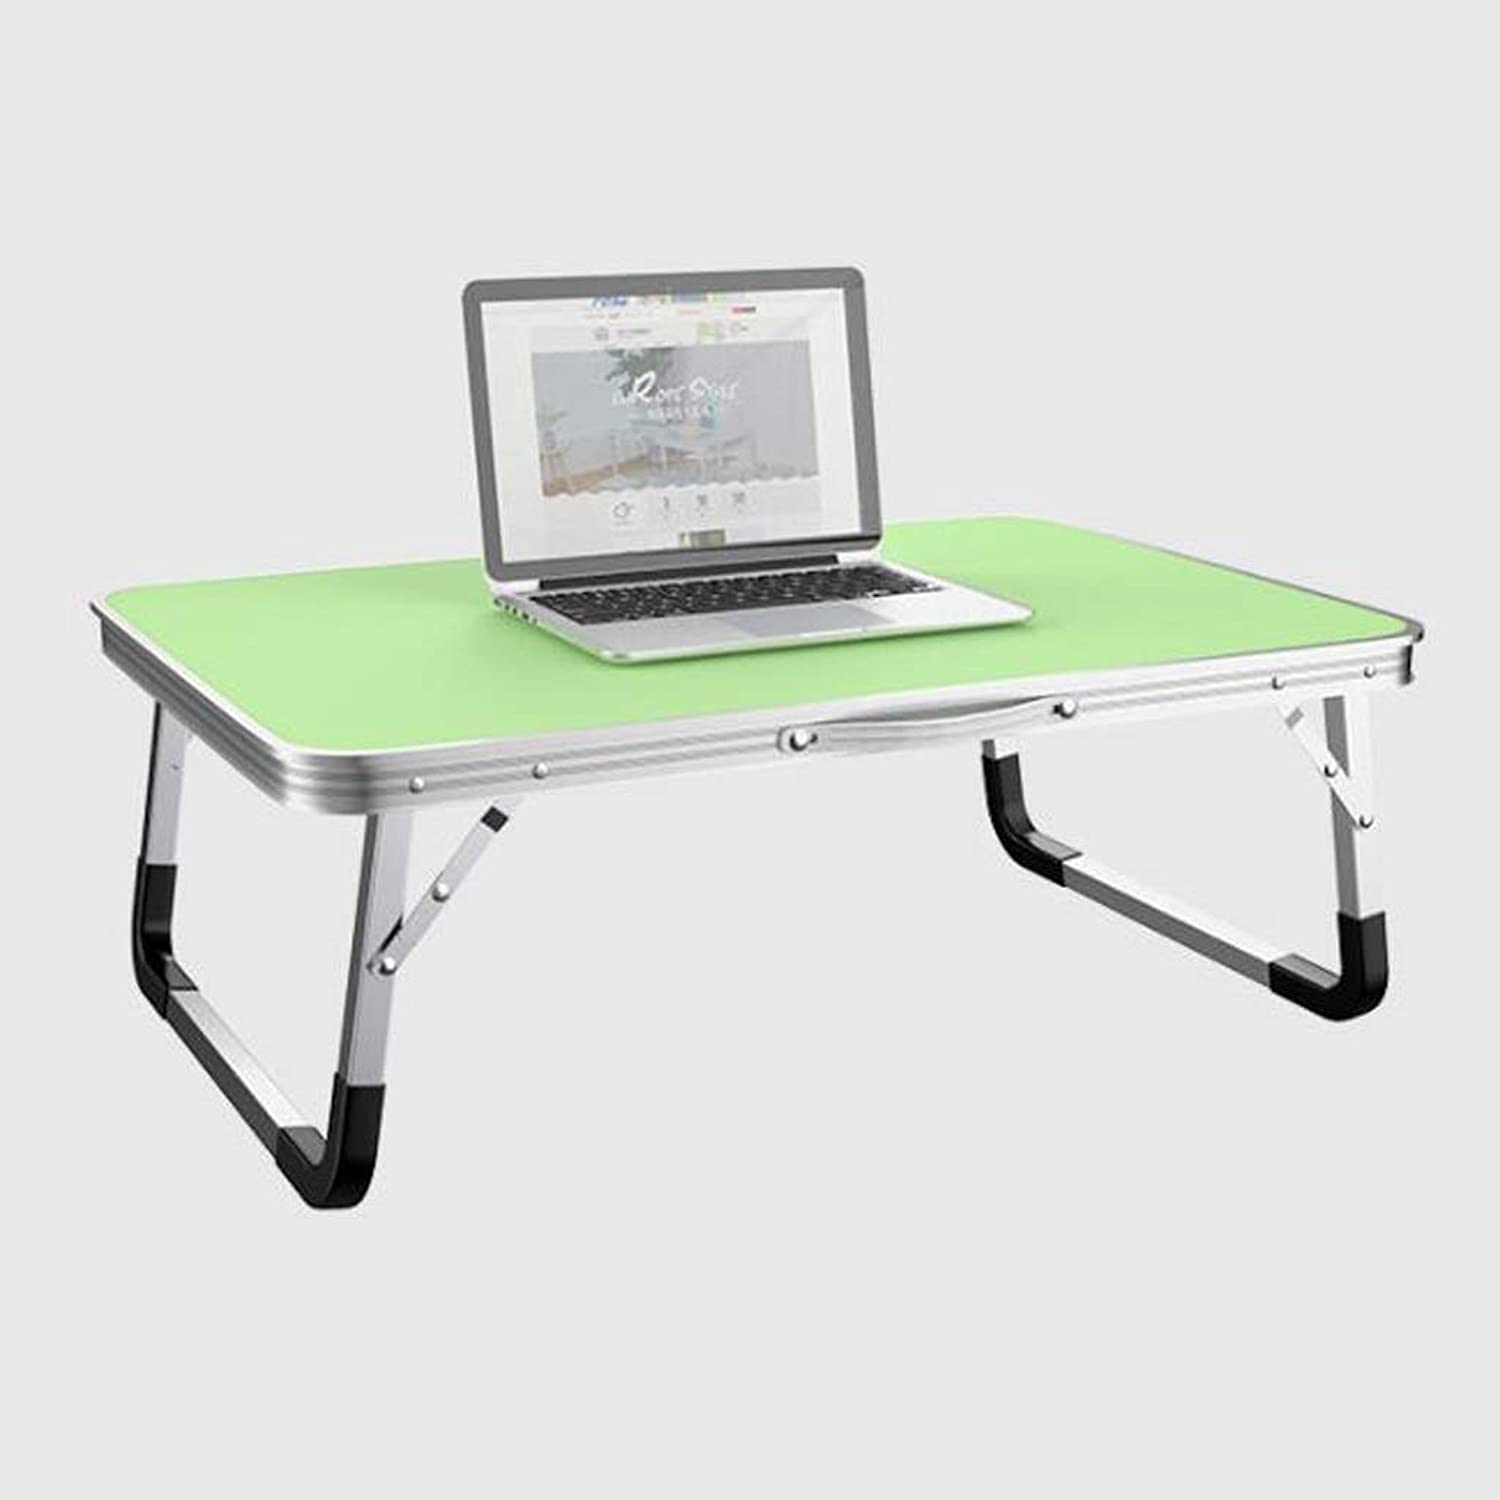 SHWSM Bed Folding Table Lazy Computer Table Student Simple Desk Home Small Dining Table, Large Desktop   70 × 50cm Folding Table (color   Green)